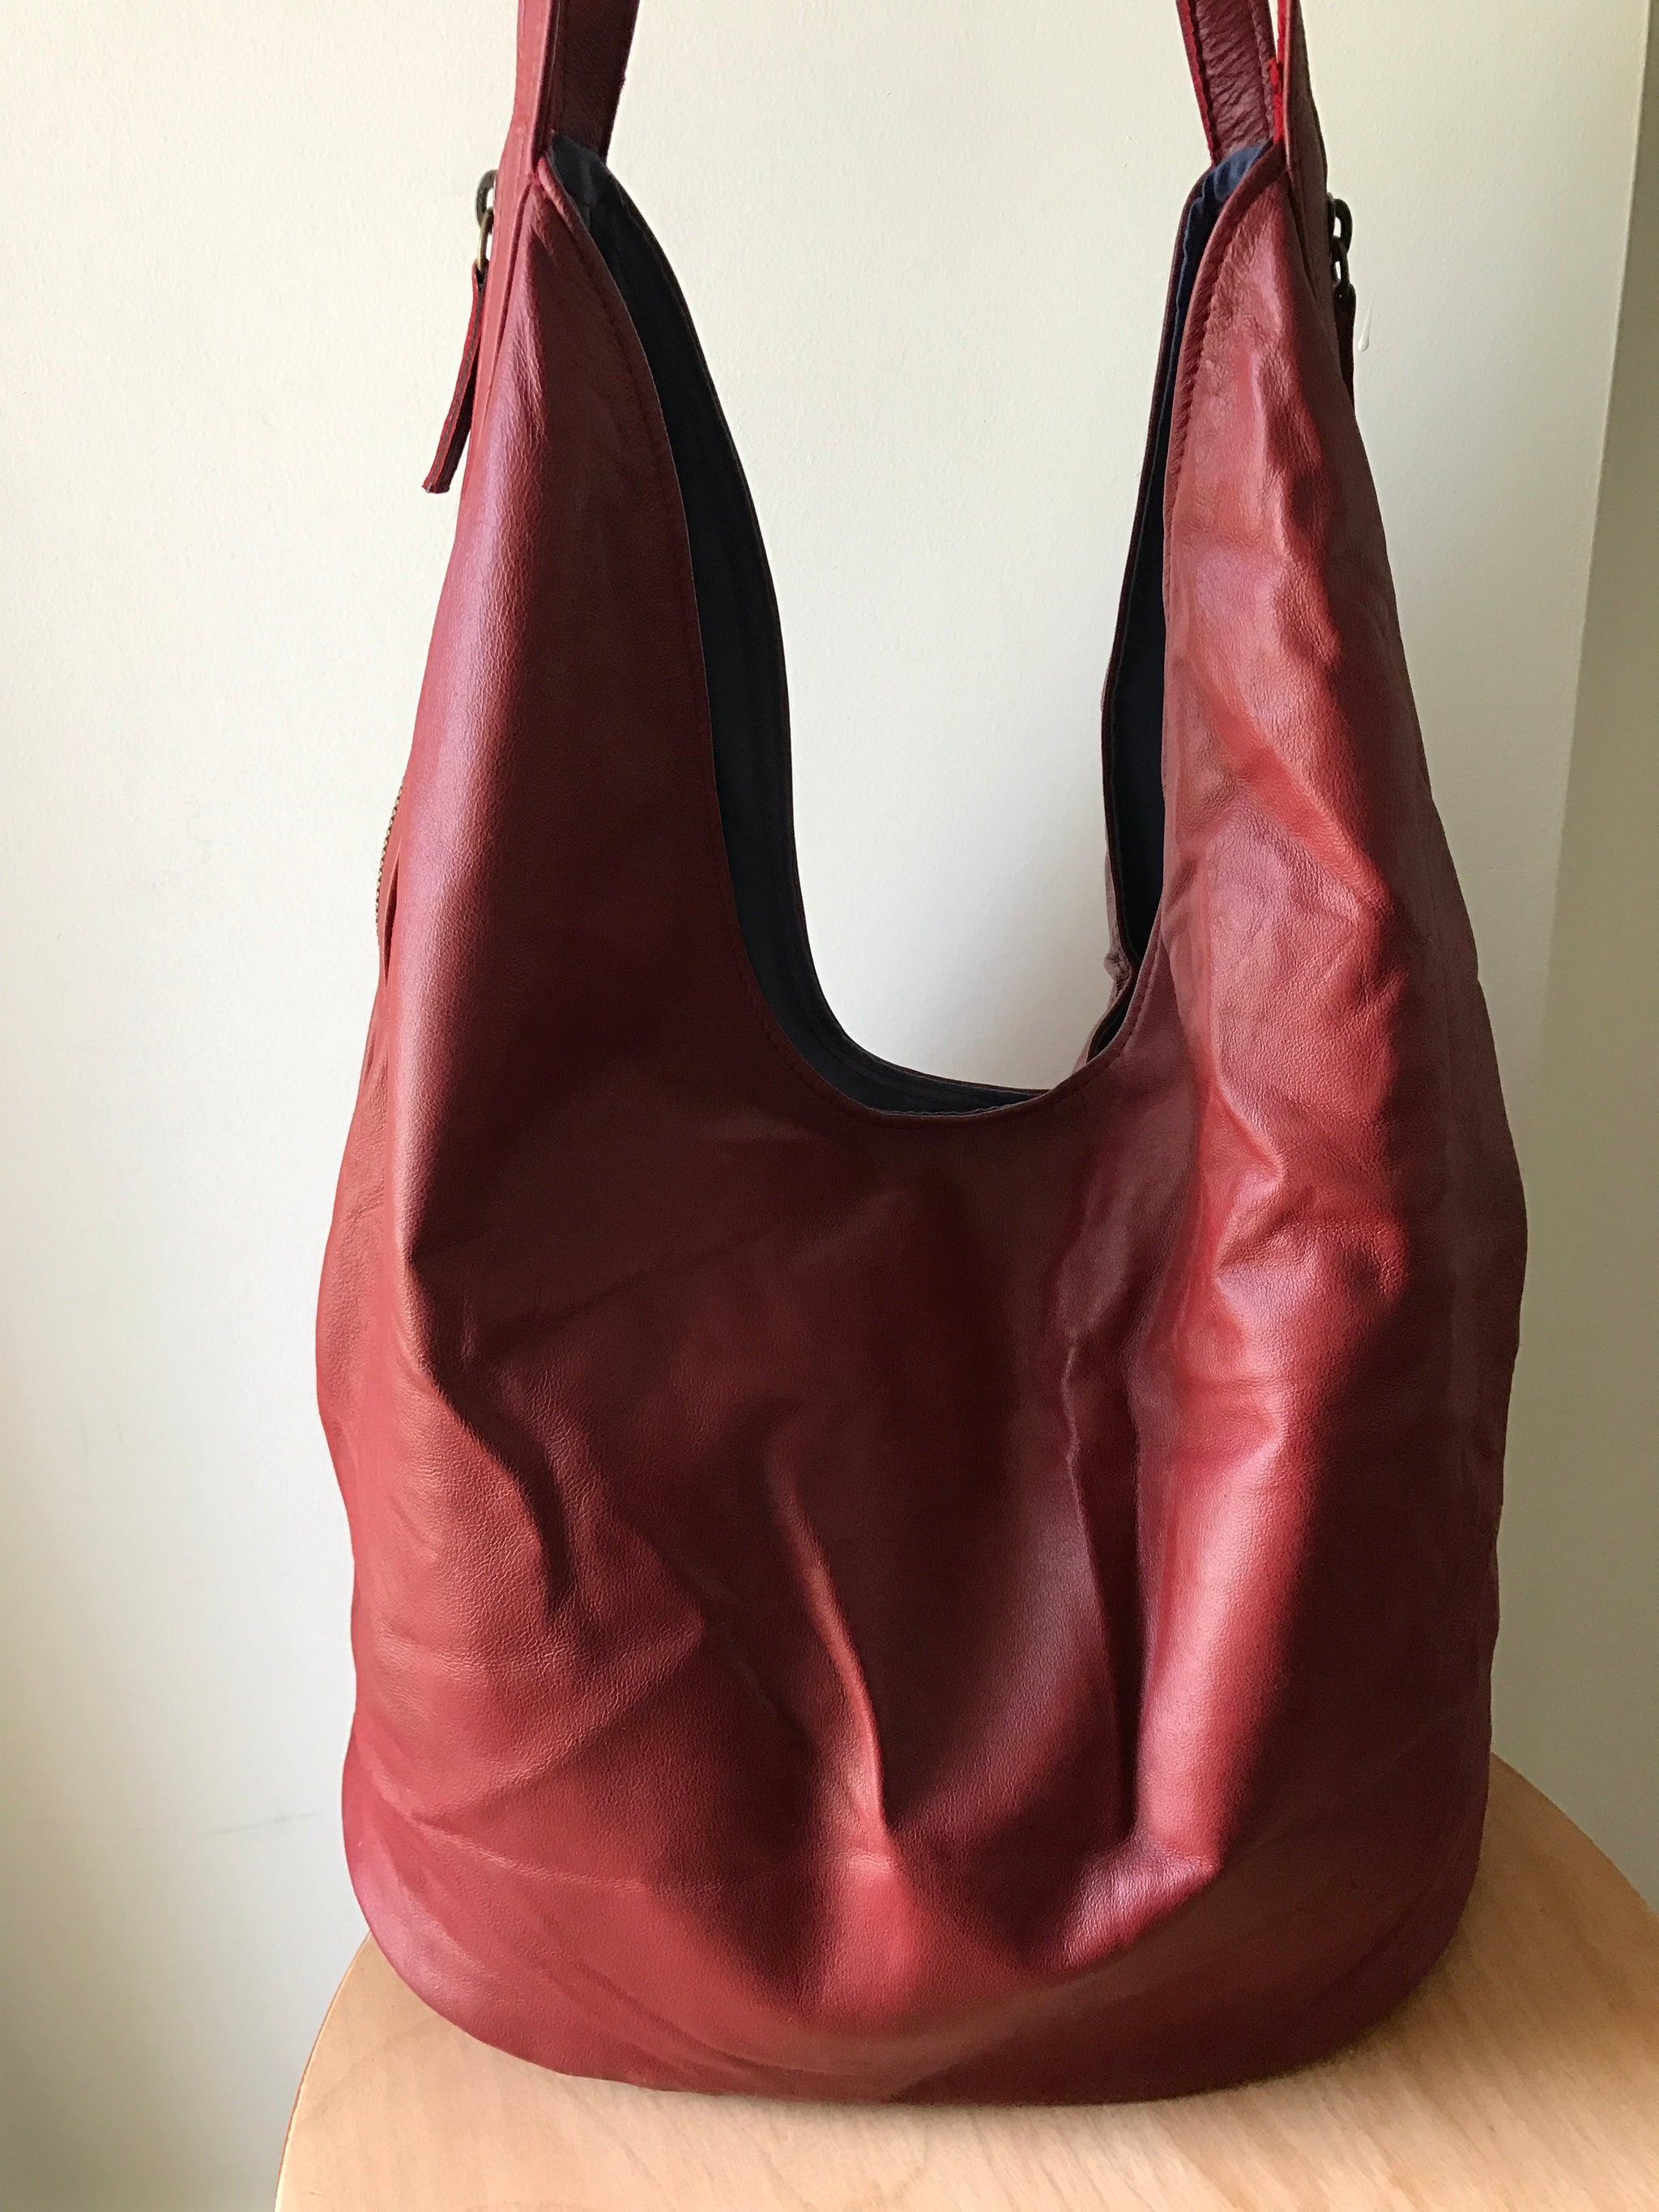 The Shift Bag - Soft, supple handbag pocketbook tote. Two toned and easy to open